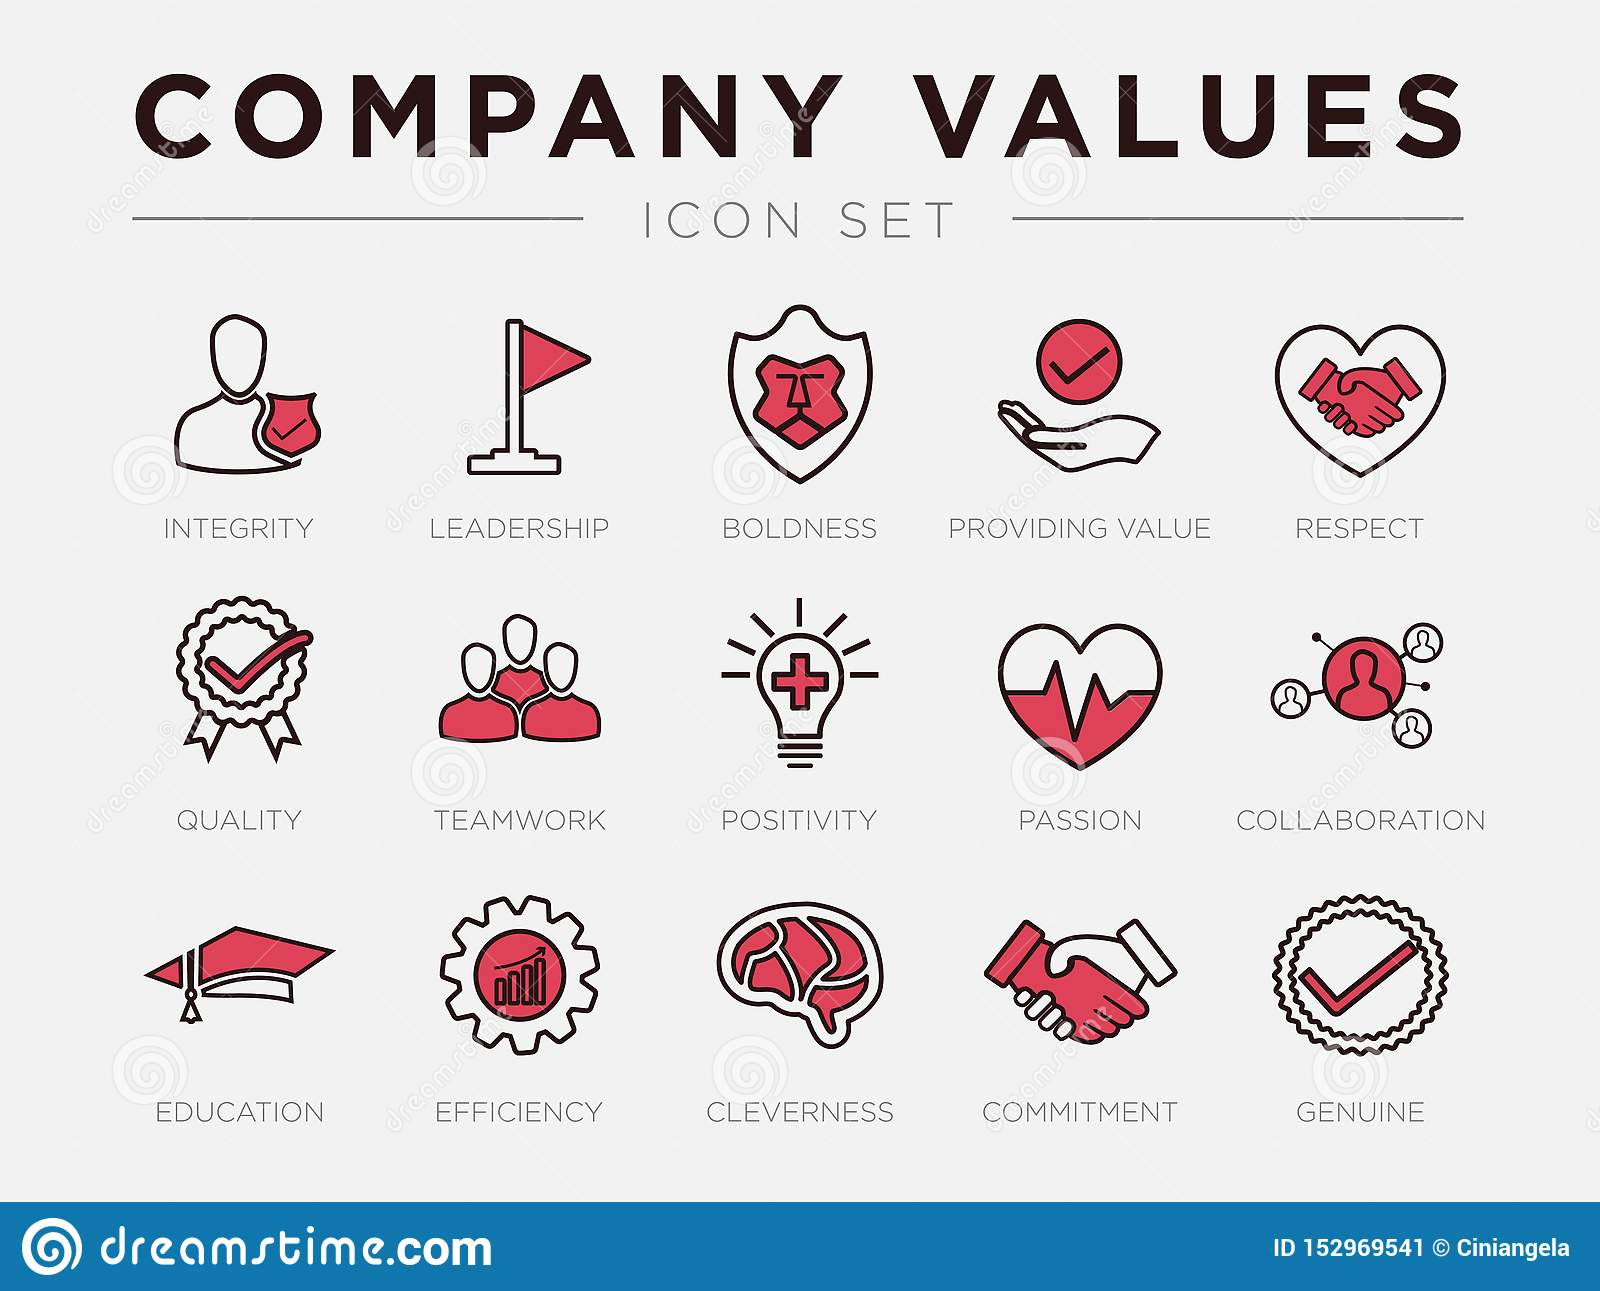 Business Company Values Retro Icon Set. Integrity, Leadership, Boldness, Value, Respect, Quality, Teamwork, Positivity, Passion,